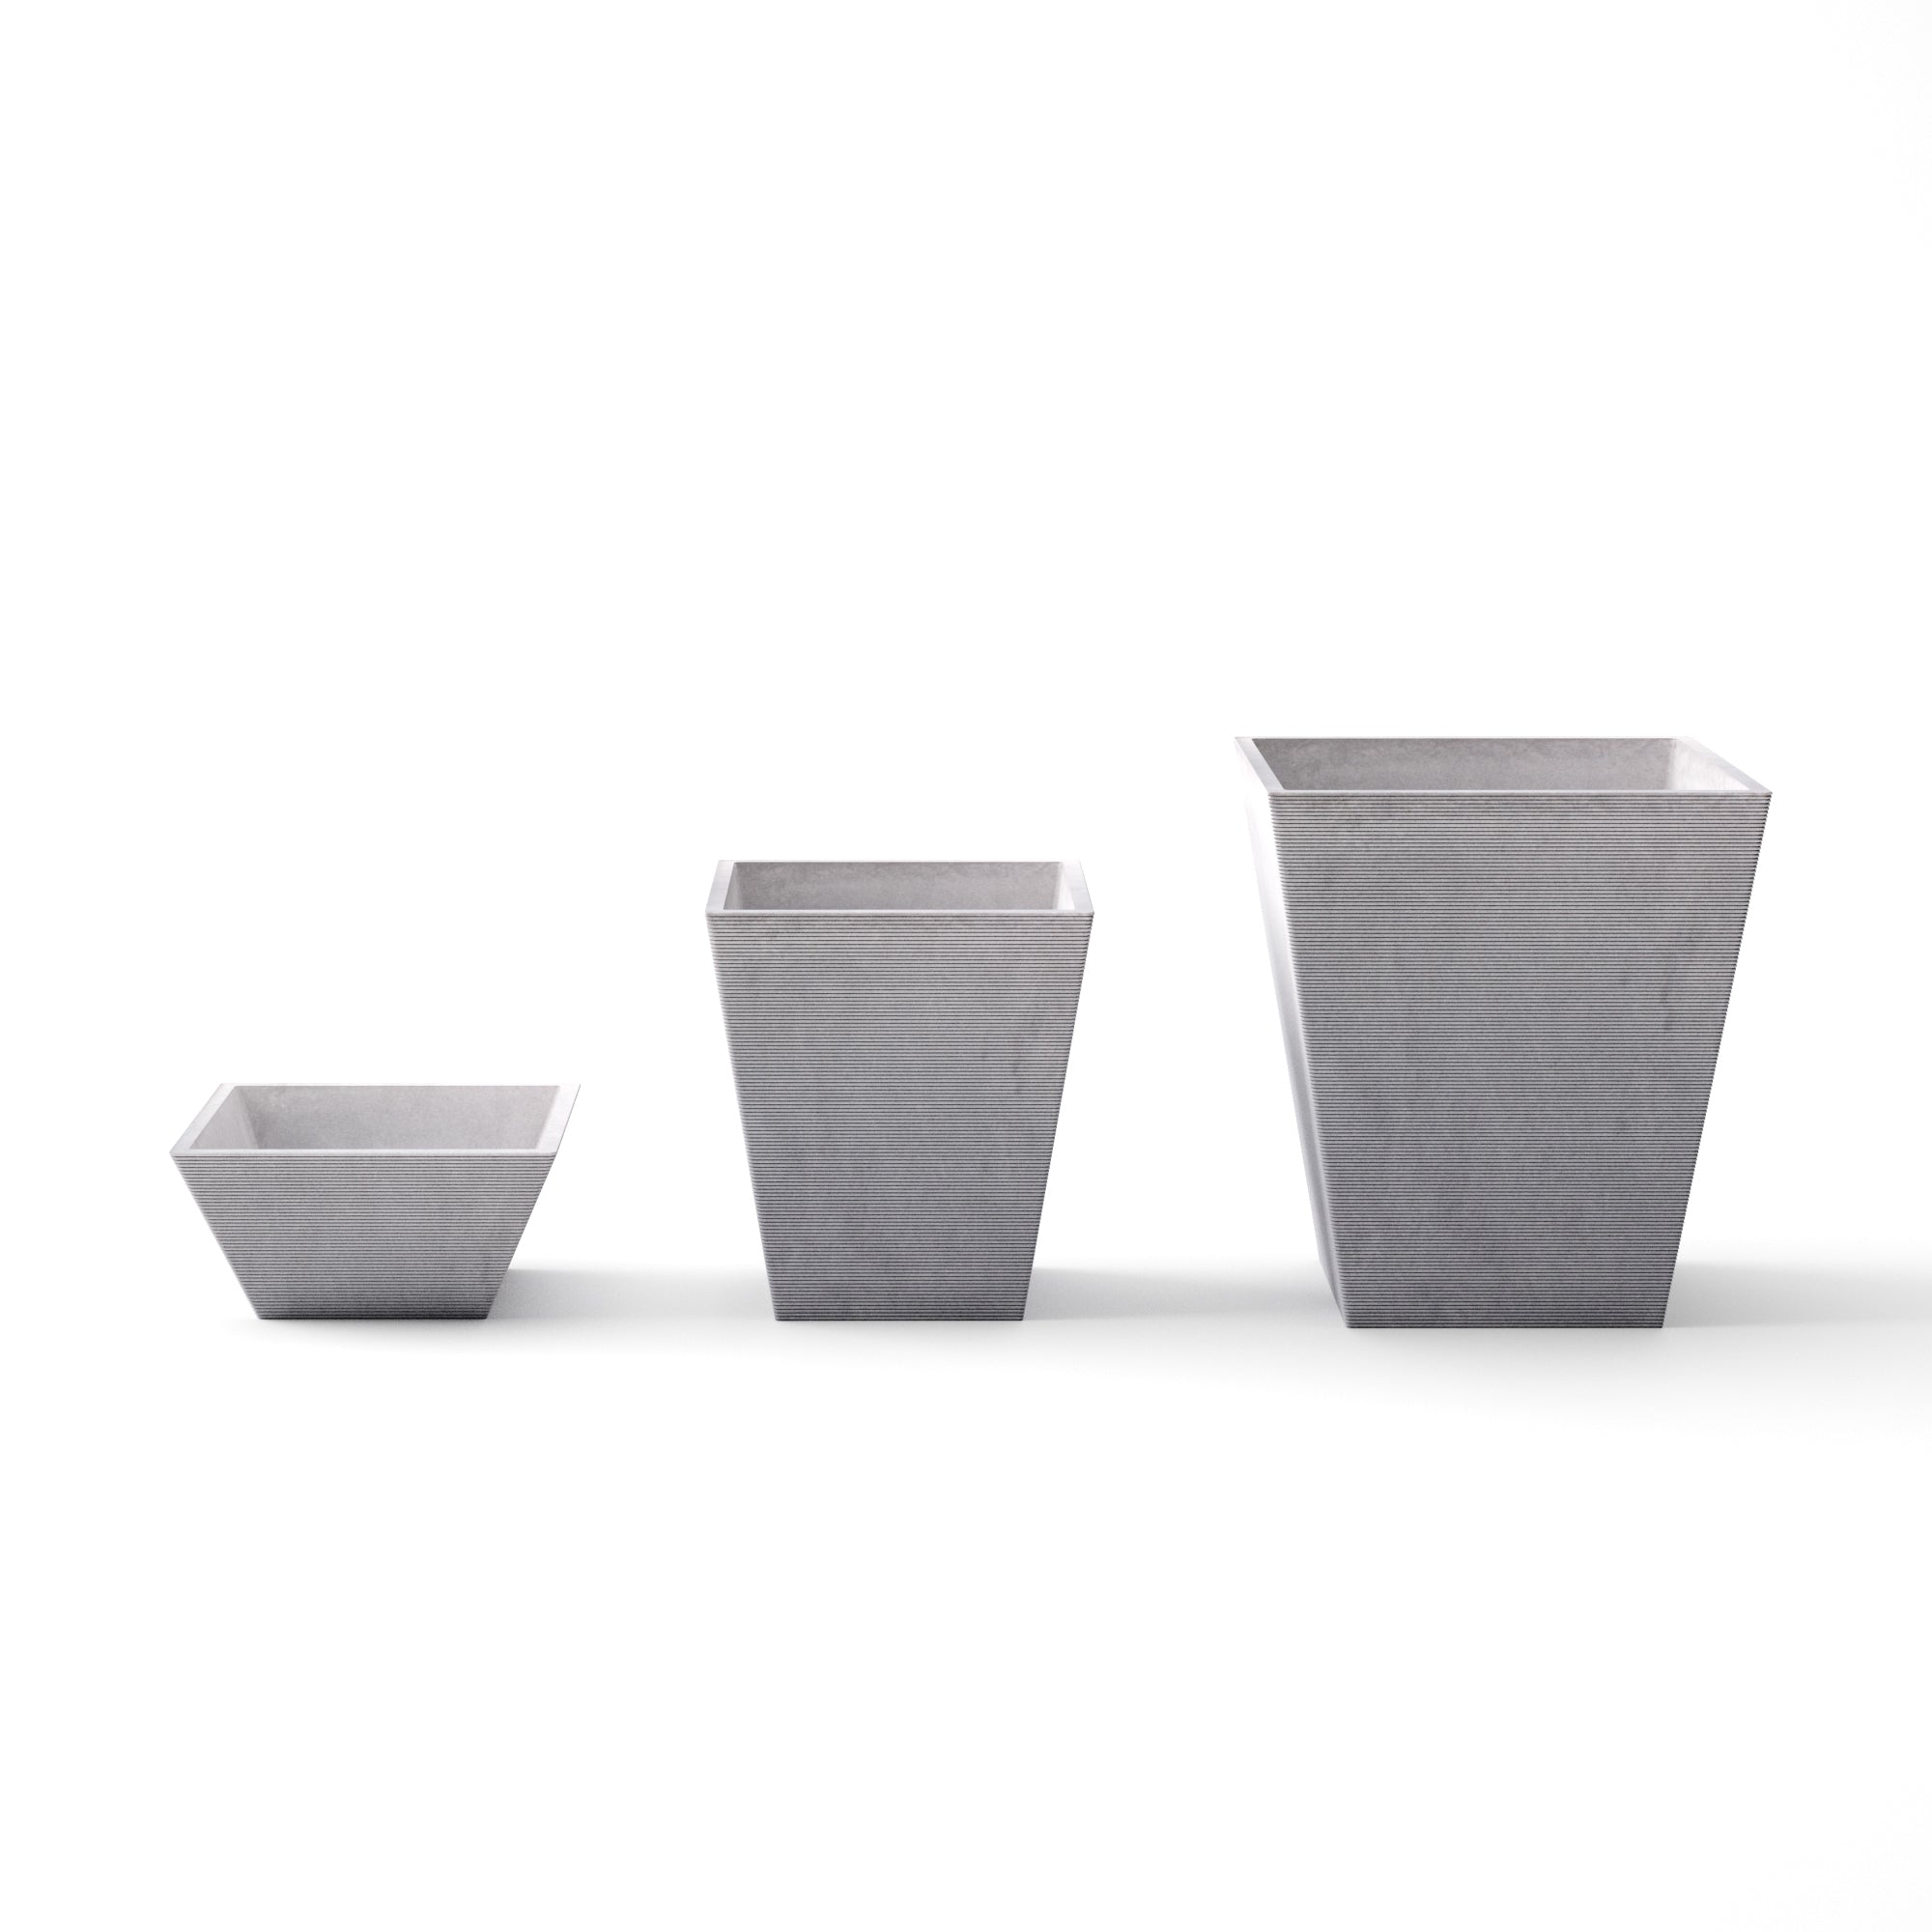 Veradek Pyramid Square 3 PC Planter Set